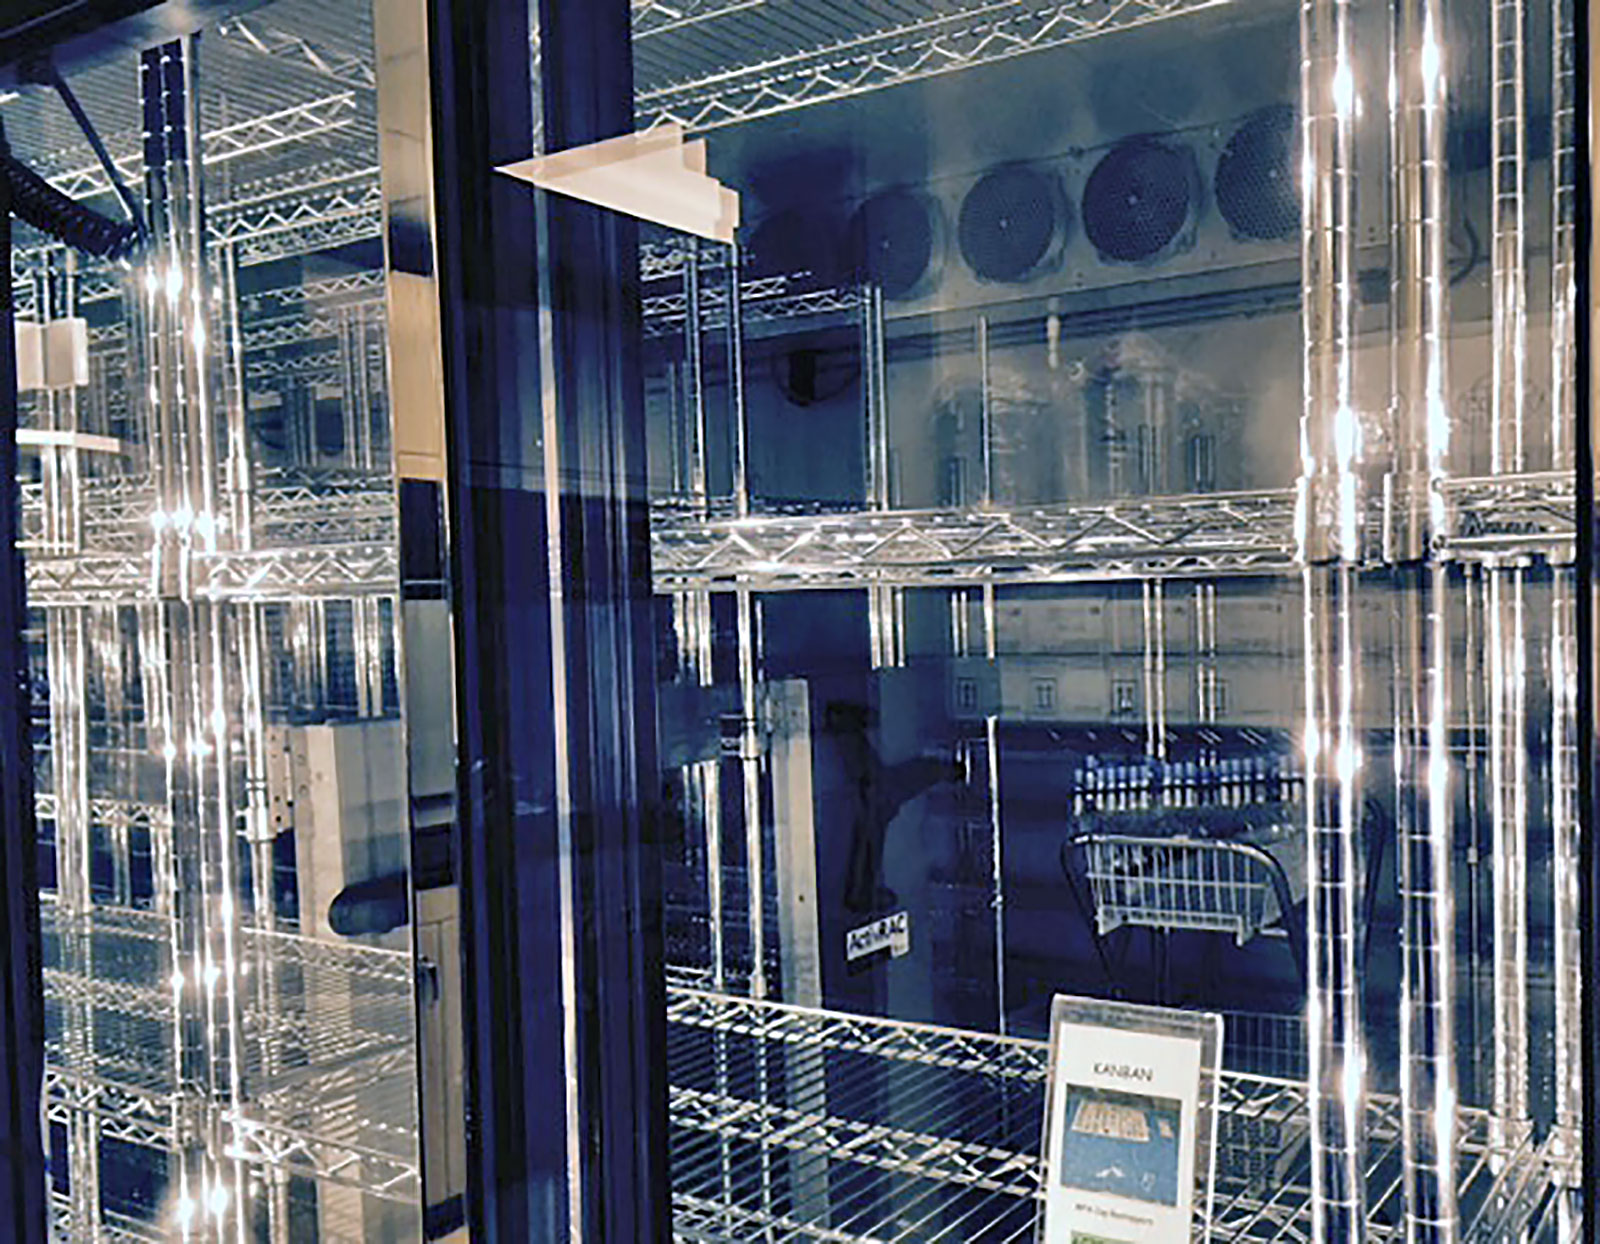 Wire shelving on stainless steel mobile storage system at Virginia Hospital